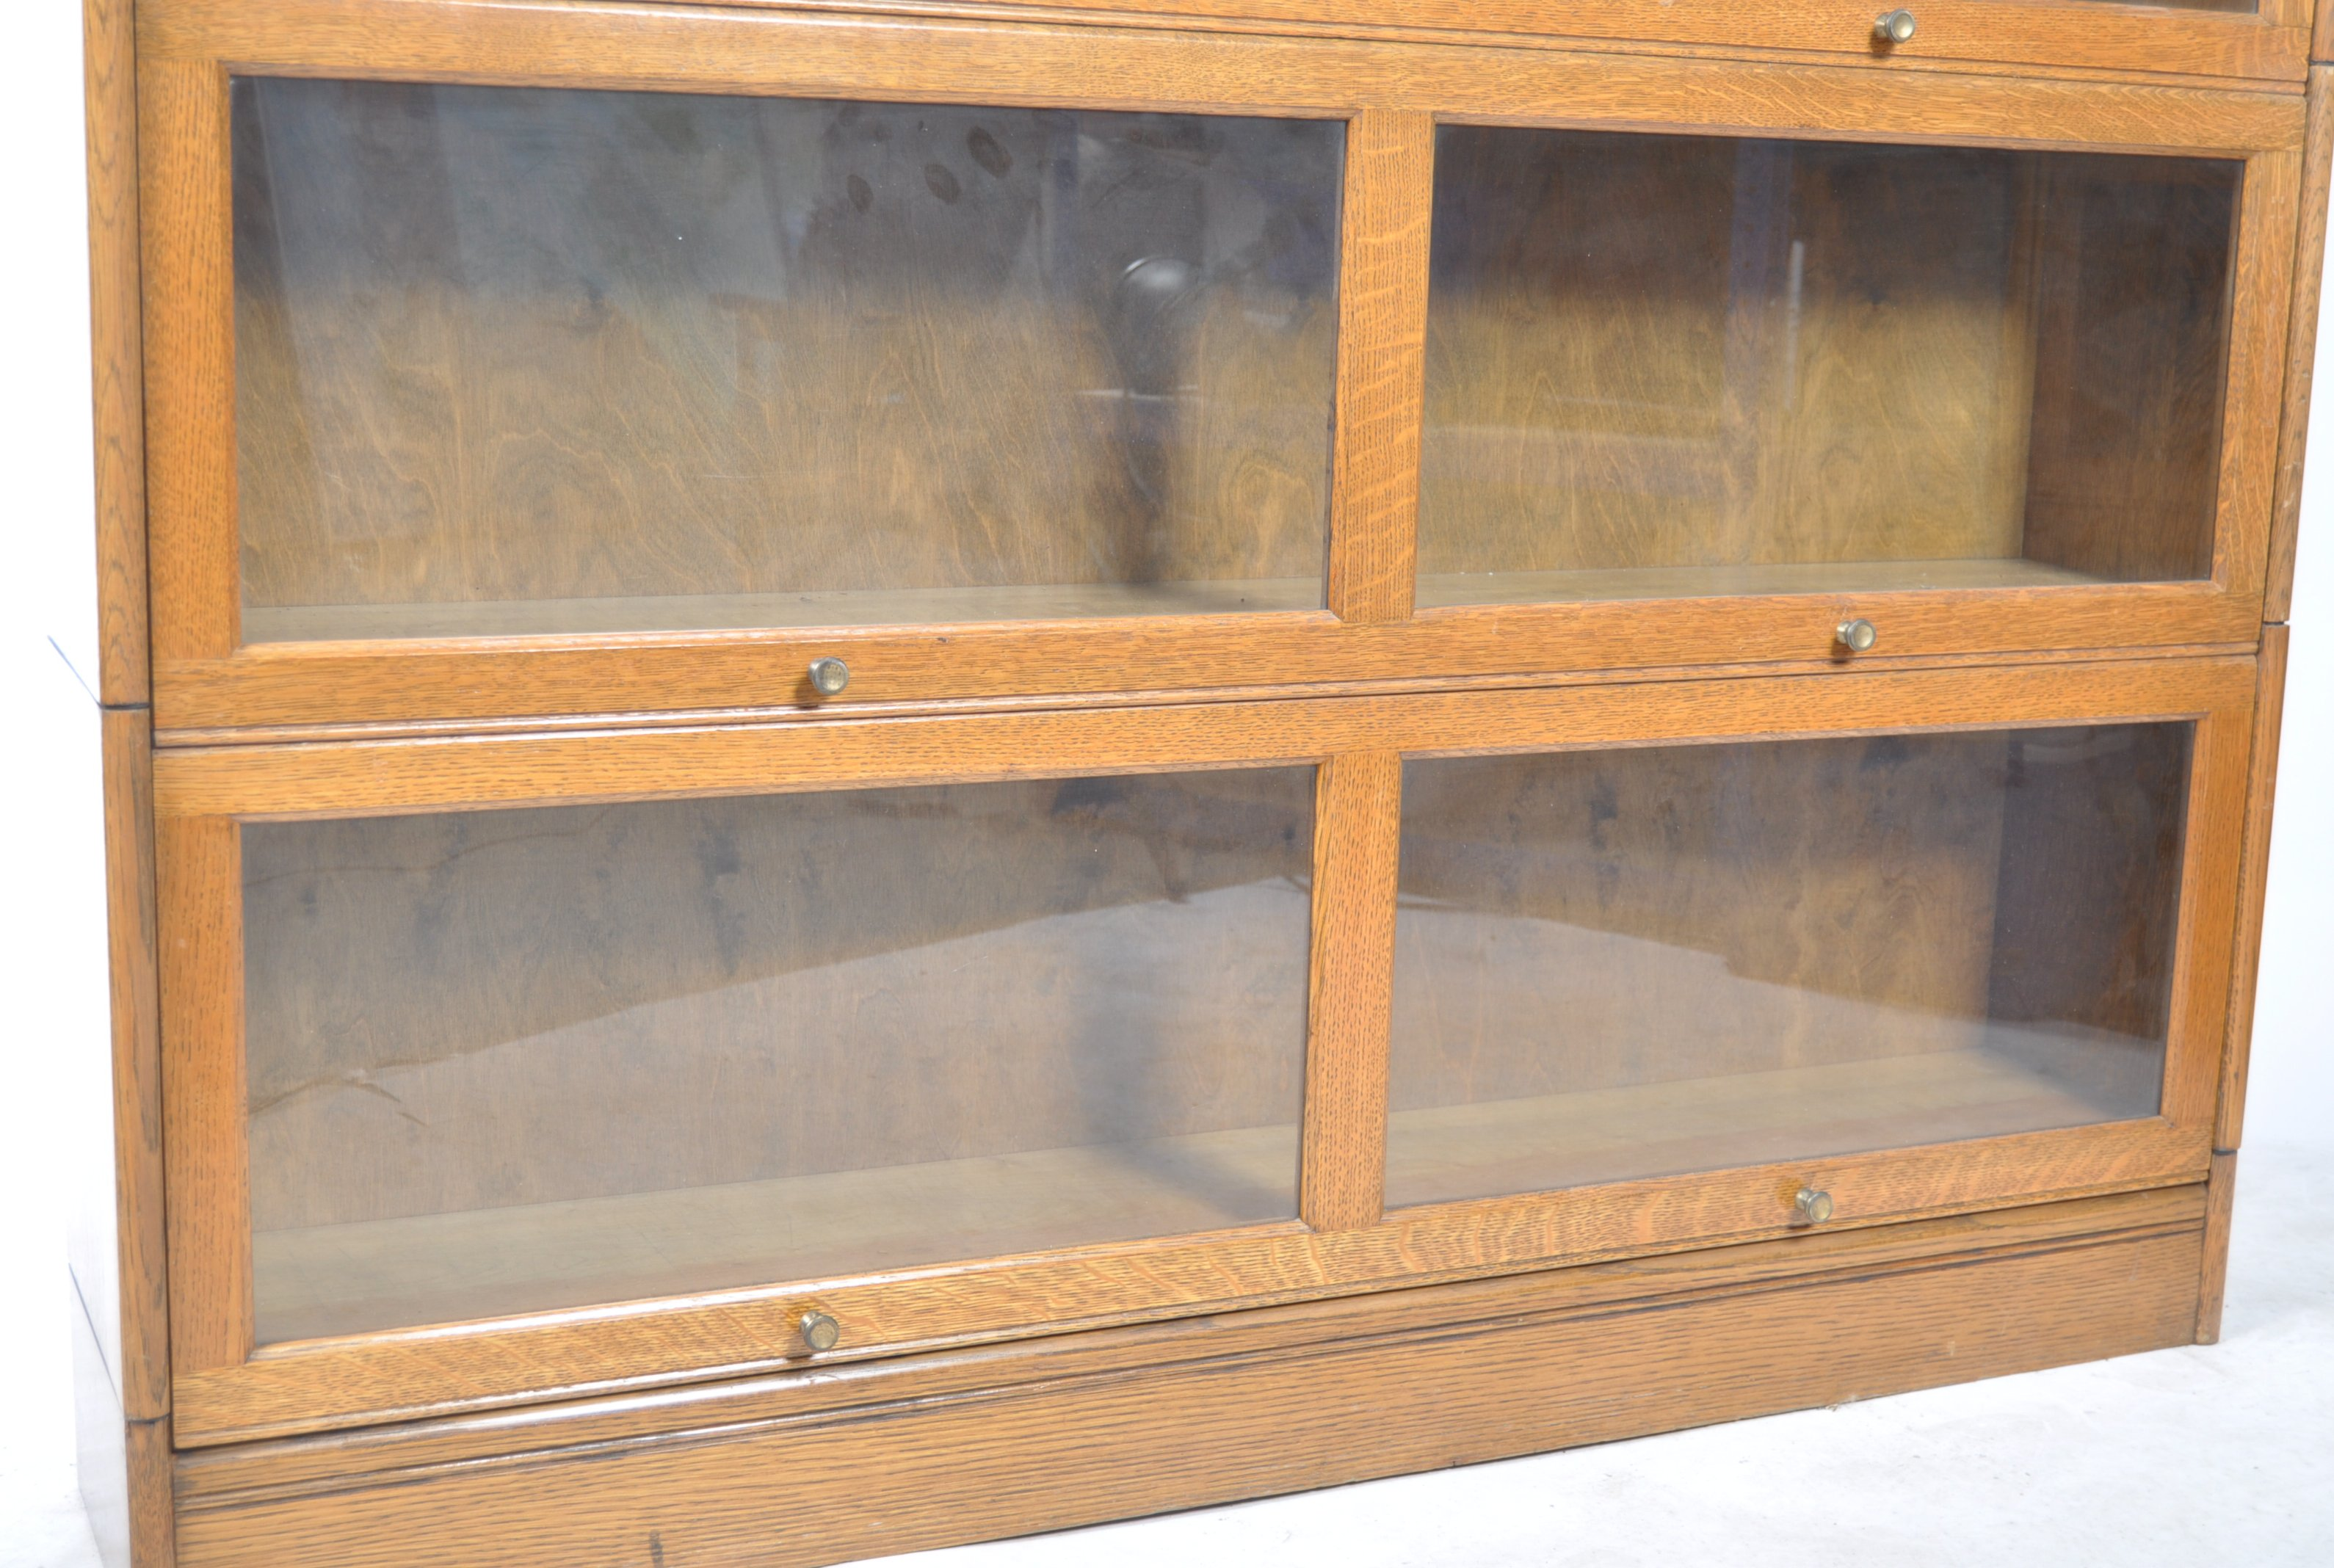 EARLY 20TH CENTURY FOUR SECTION LAWYERS STACKING BOOKCASE - Image 4 of 6